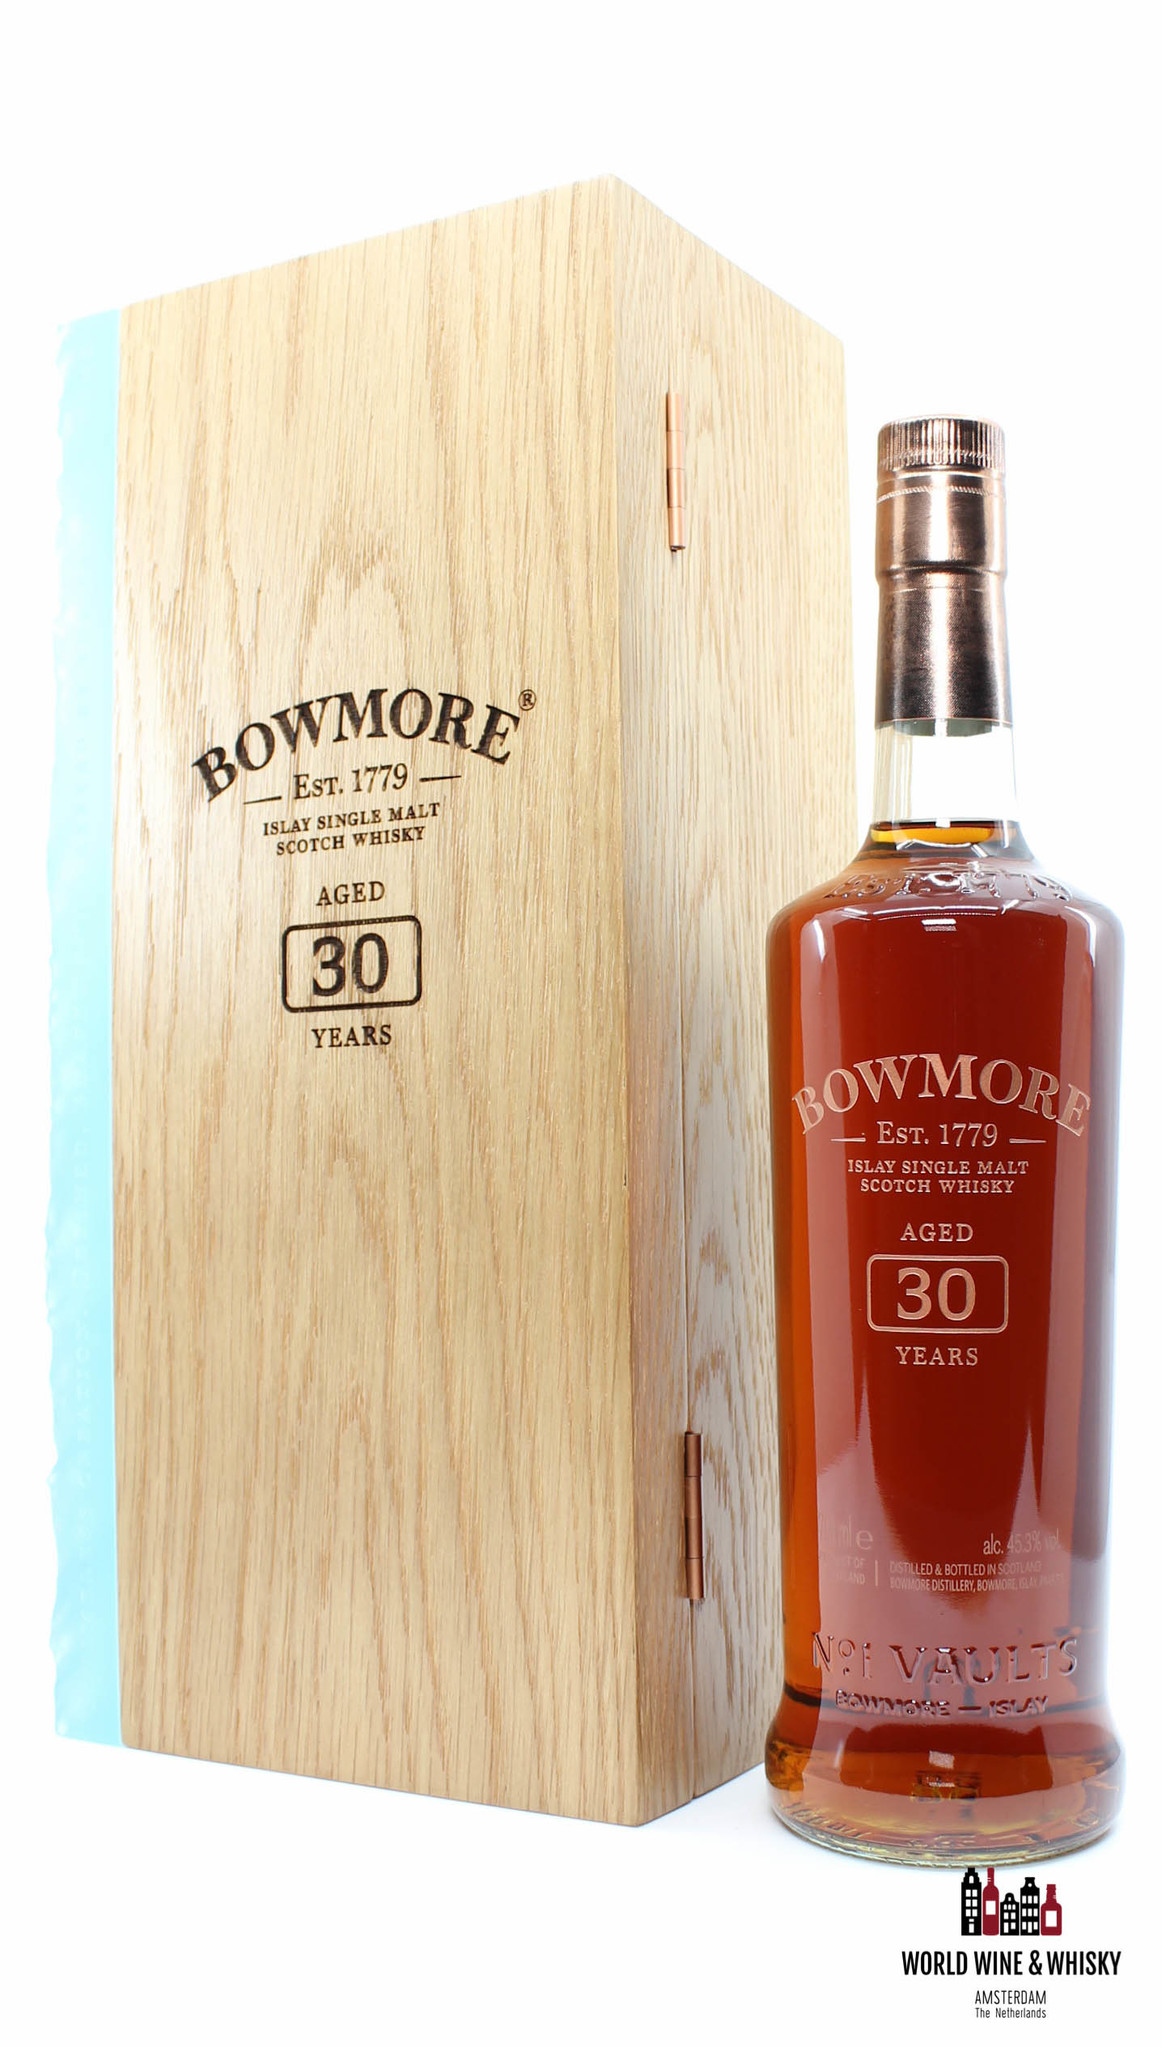 Bowmore Bowmore 30 Years Old 1989 2020 45.3% (1 of 2580) - Full Set